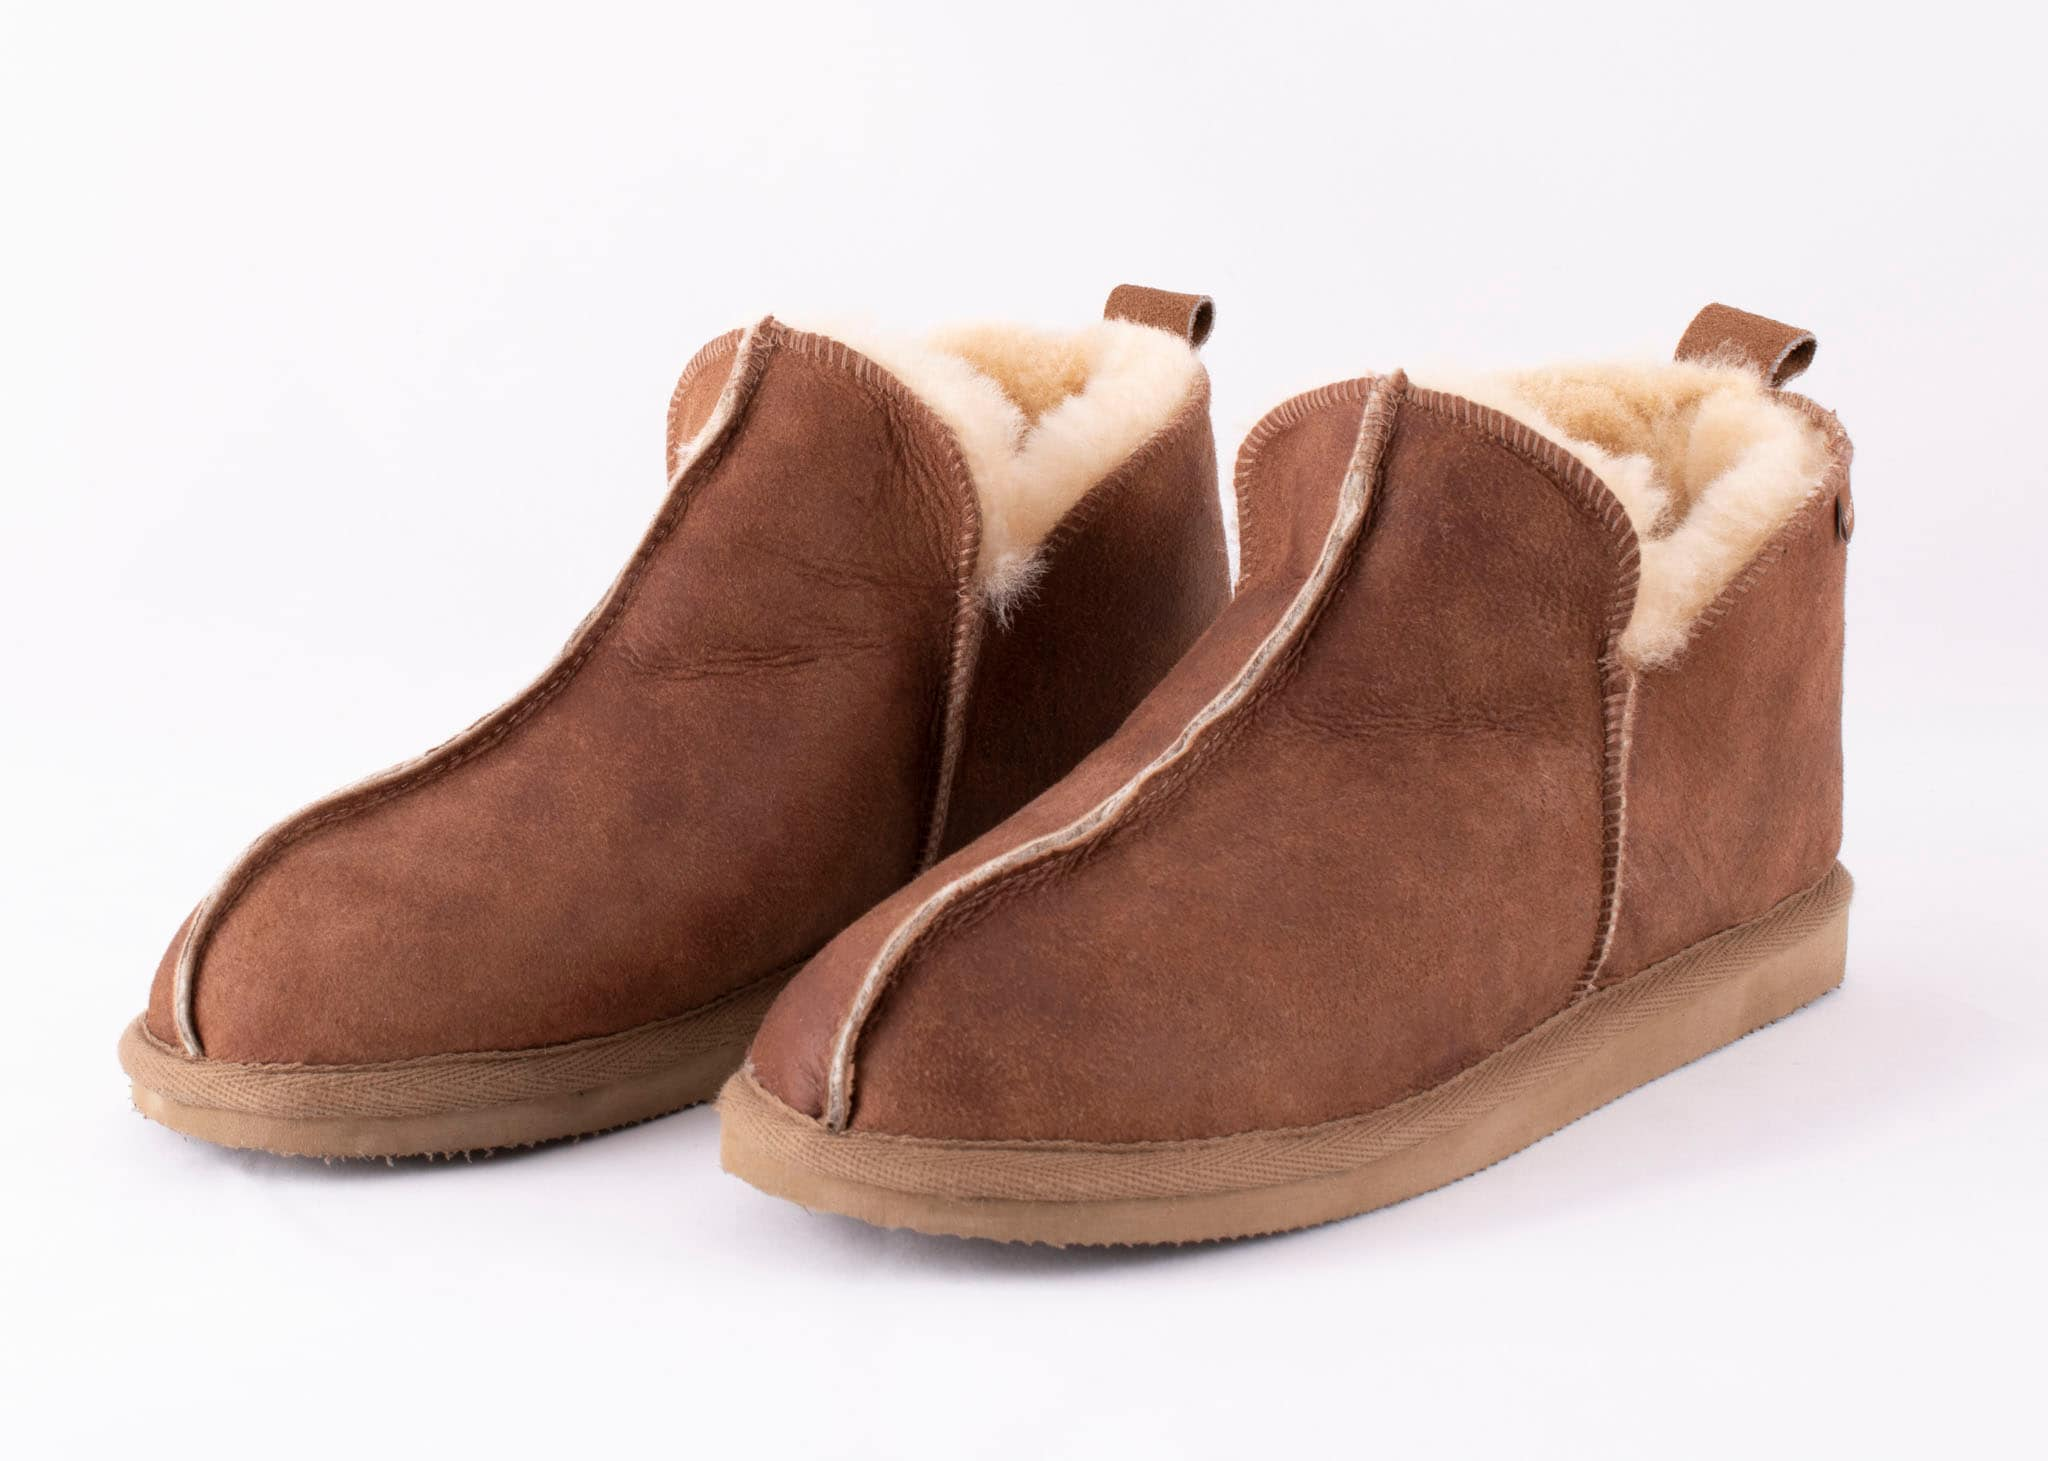 Anton slippers Antique cognac